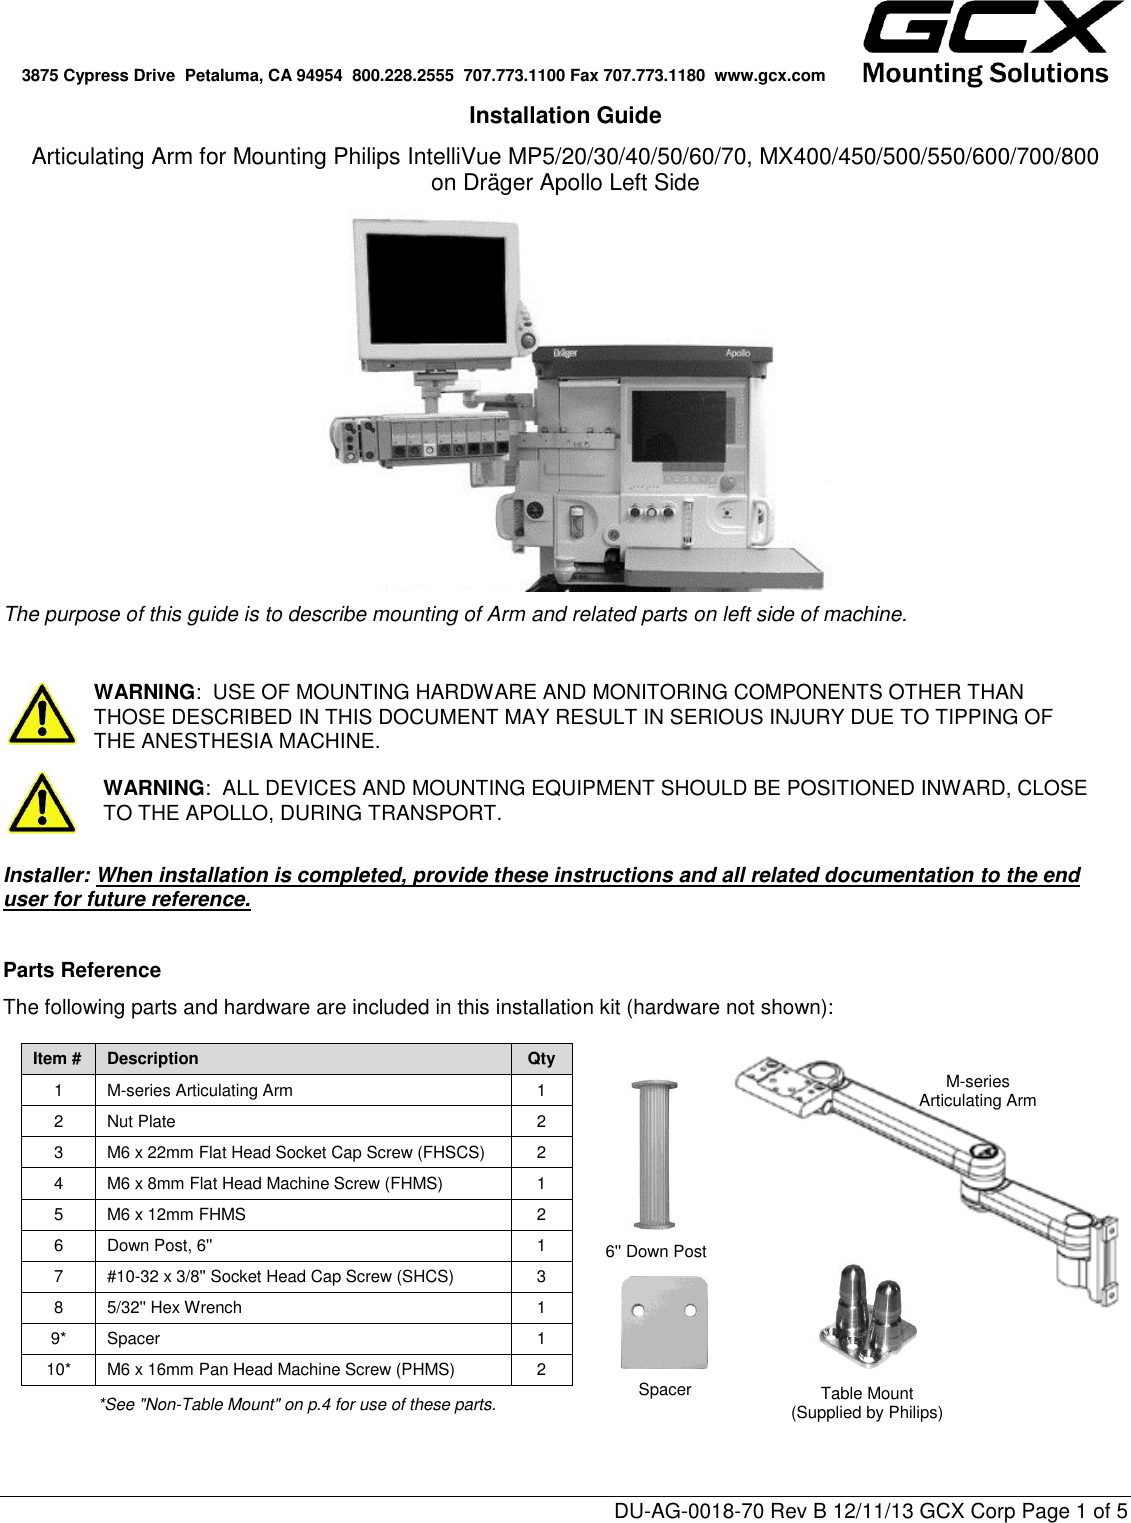 Philips MNT89 GCX Mounting Assembly Installation Guide User